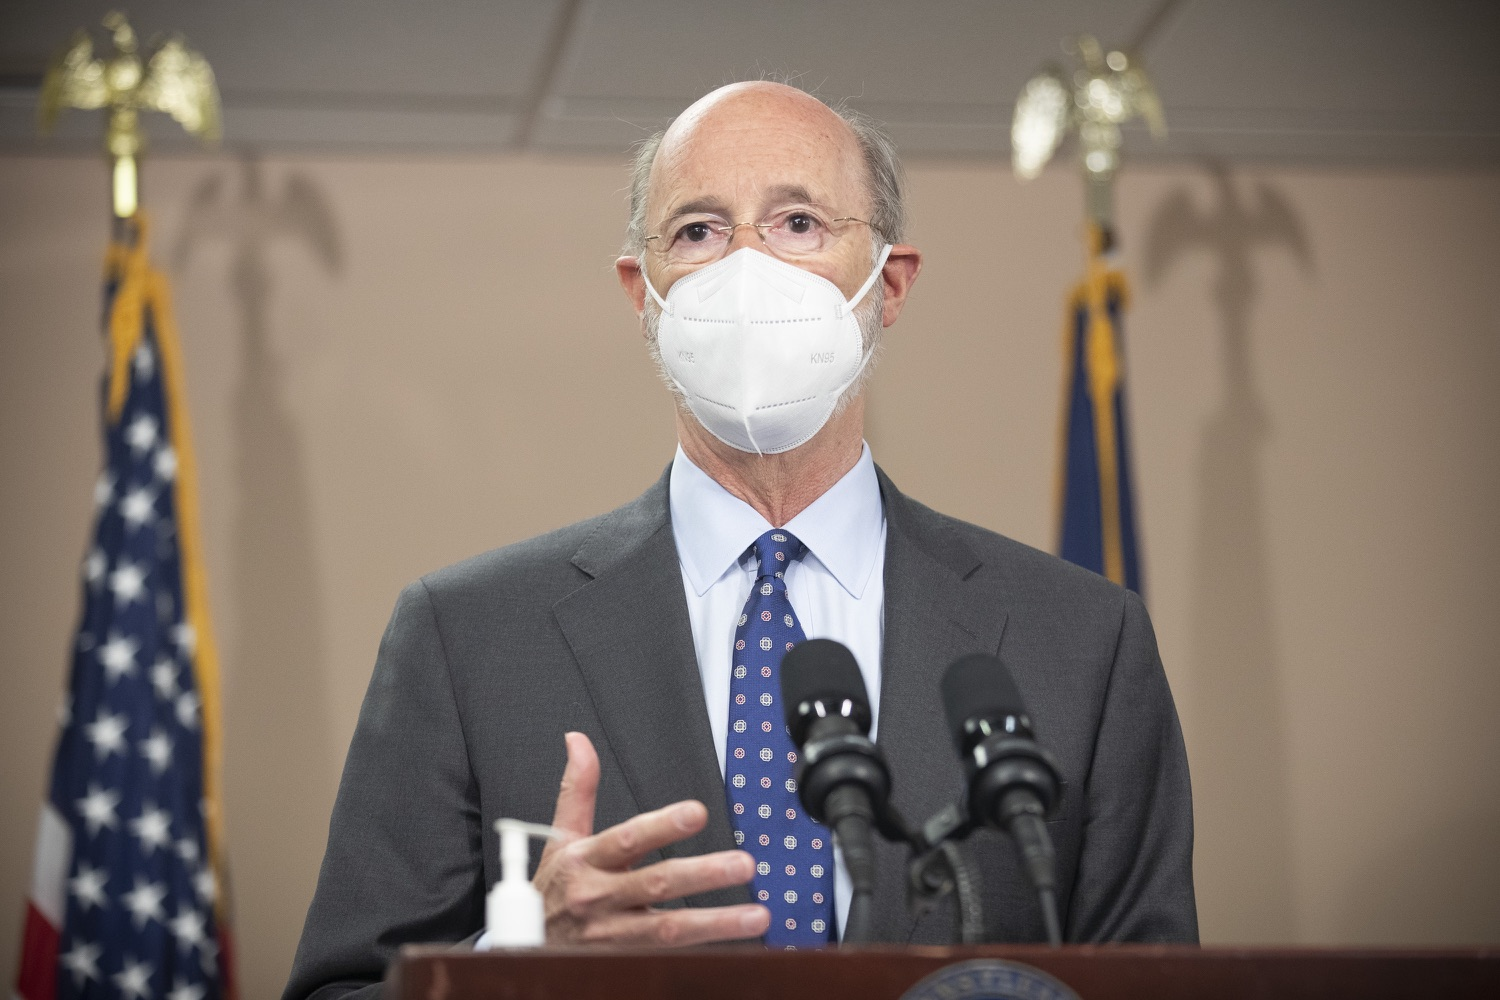 """<a href=""""https://filesource.wostreaming.net/commonwealthofpa/photo/18646_gov_vaccines_dz_013.jpg"""" target=""""_blank"""">⇣Download Photo<br></a>Pennsylvania Governor Tom Wolf speaking with the press.  After vaccinating more than 112,500 teachers and school staff in only about three weeks, Governor Tom Wolf visited Luzerne County today to announce the special vaccination initiative is a success and was completed ahead of schedule. The accomplishment is an important step to help more students and teachers safely return to classrooms across the state.  Kingston, PA - April 2, 2021"""